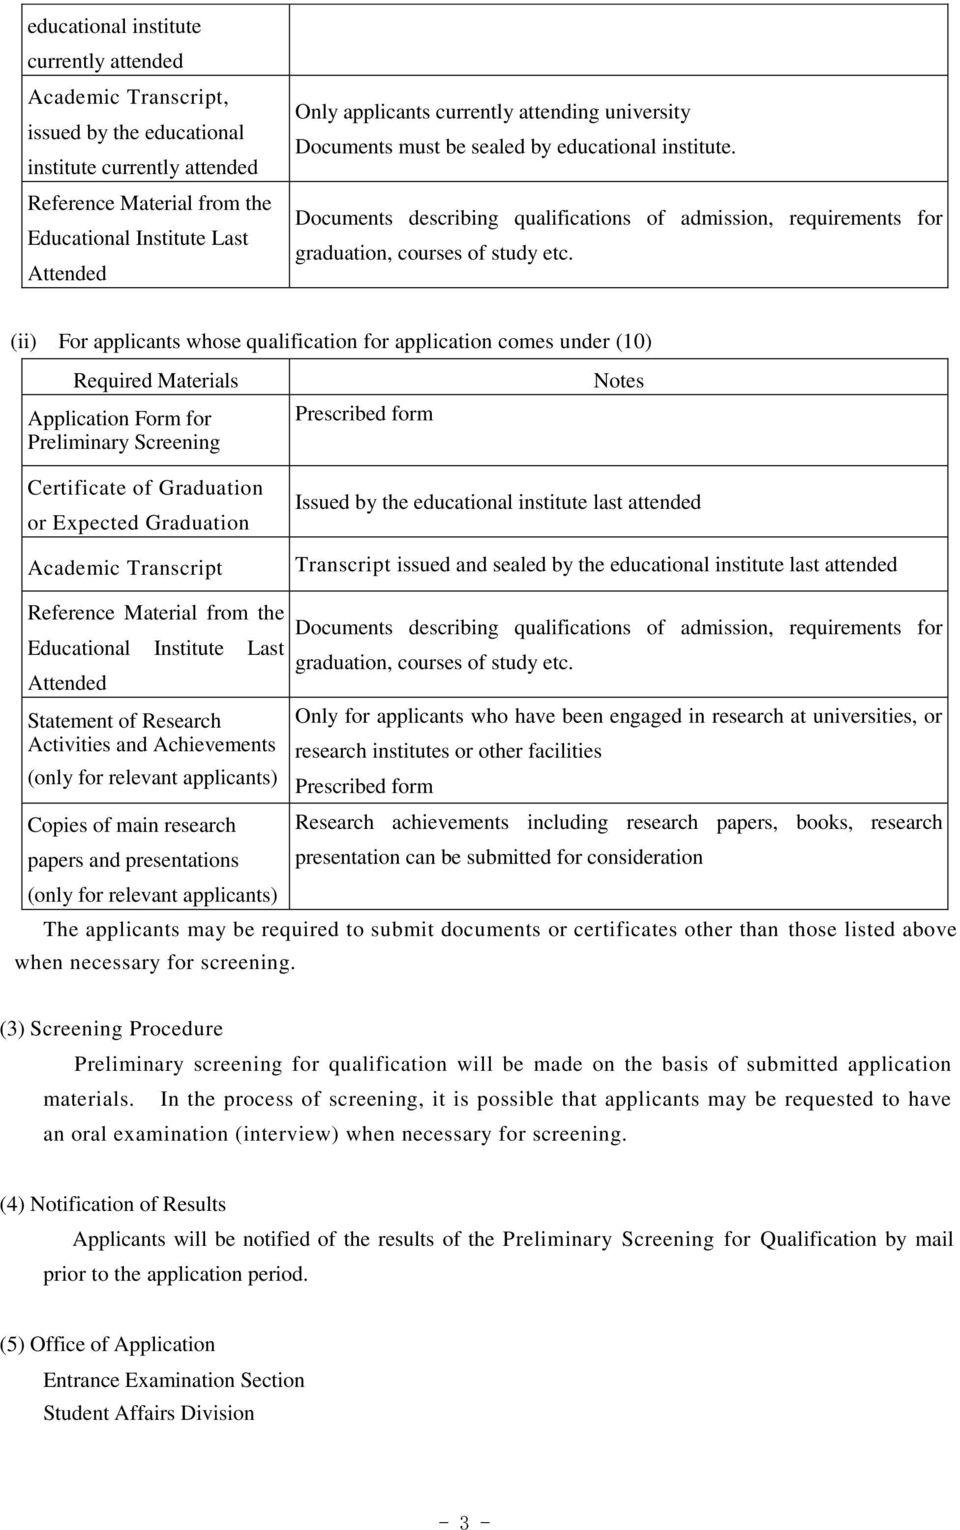 (ii) For applicants whose qualification for application comes under (10) Required Materials Application Form for Preliminary Screening Notes Certificate of Graduation or Expected Graduation Academic